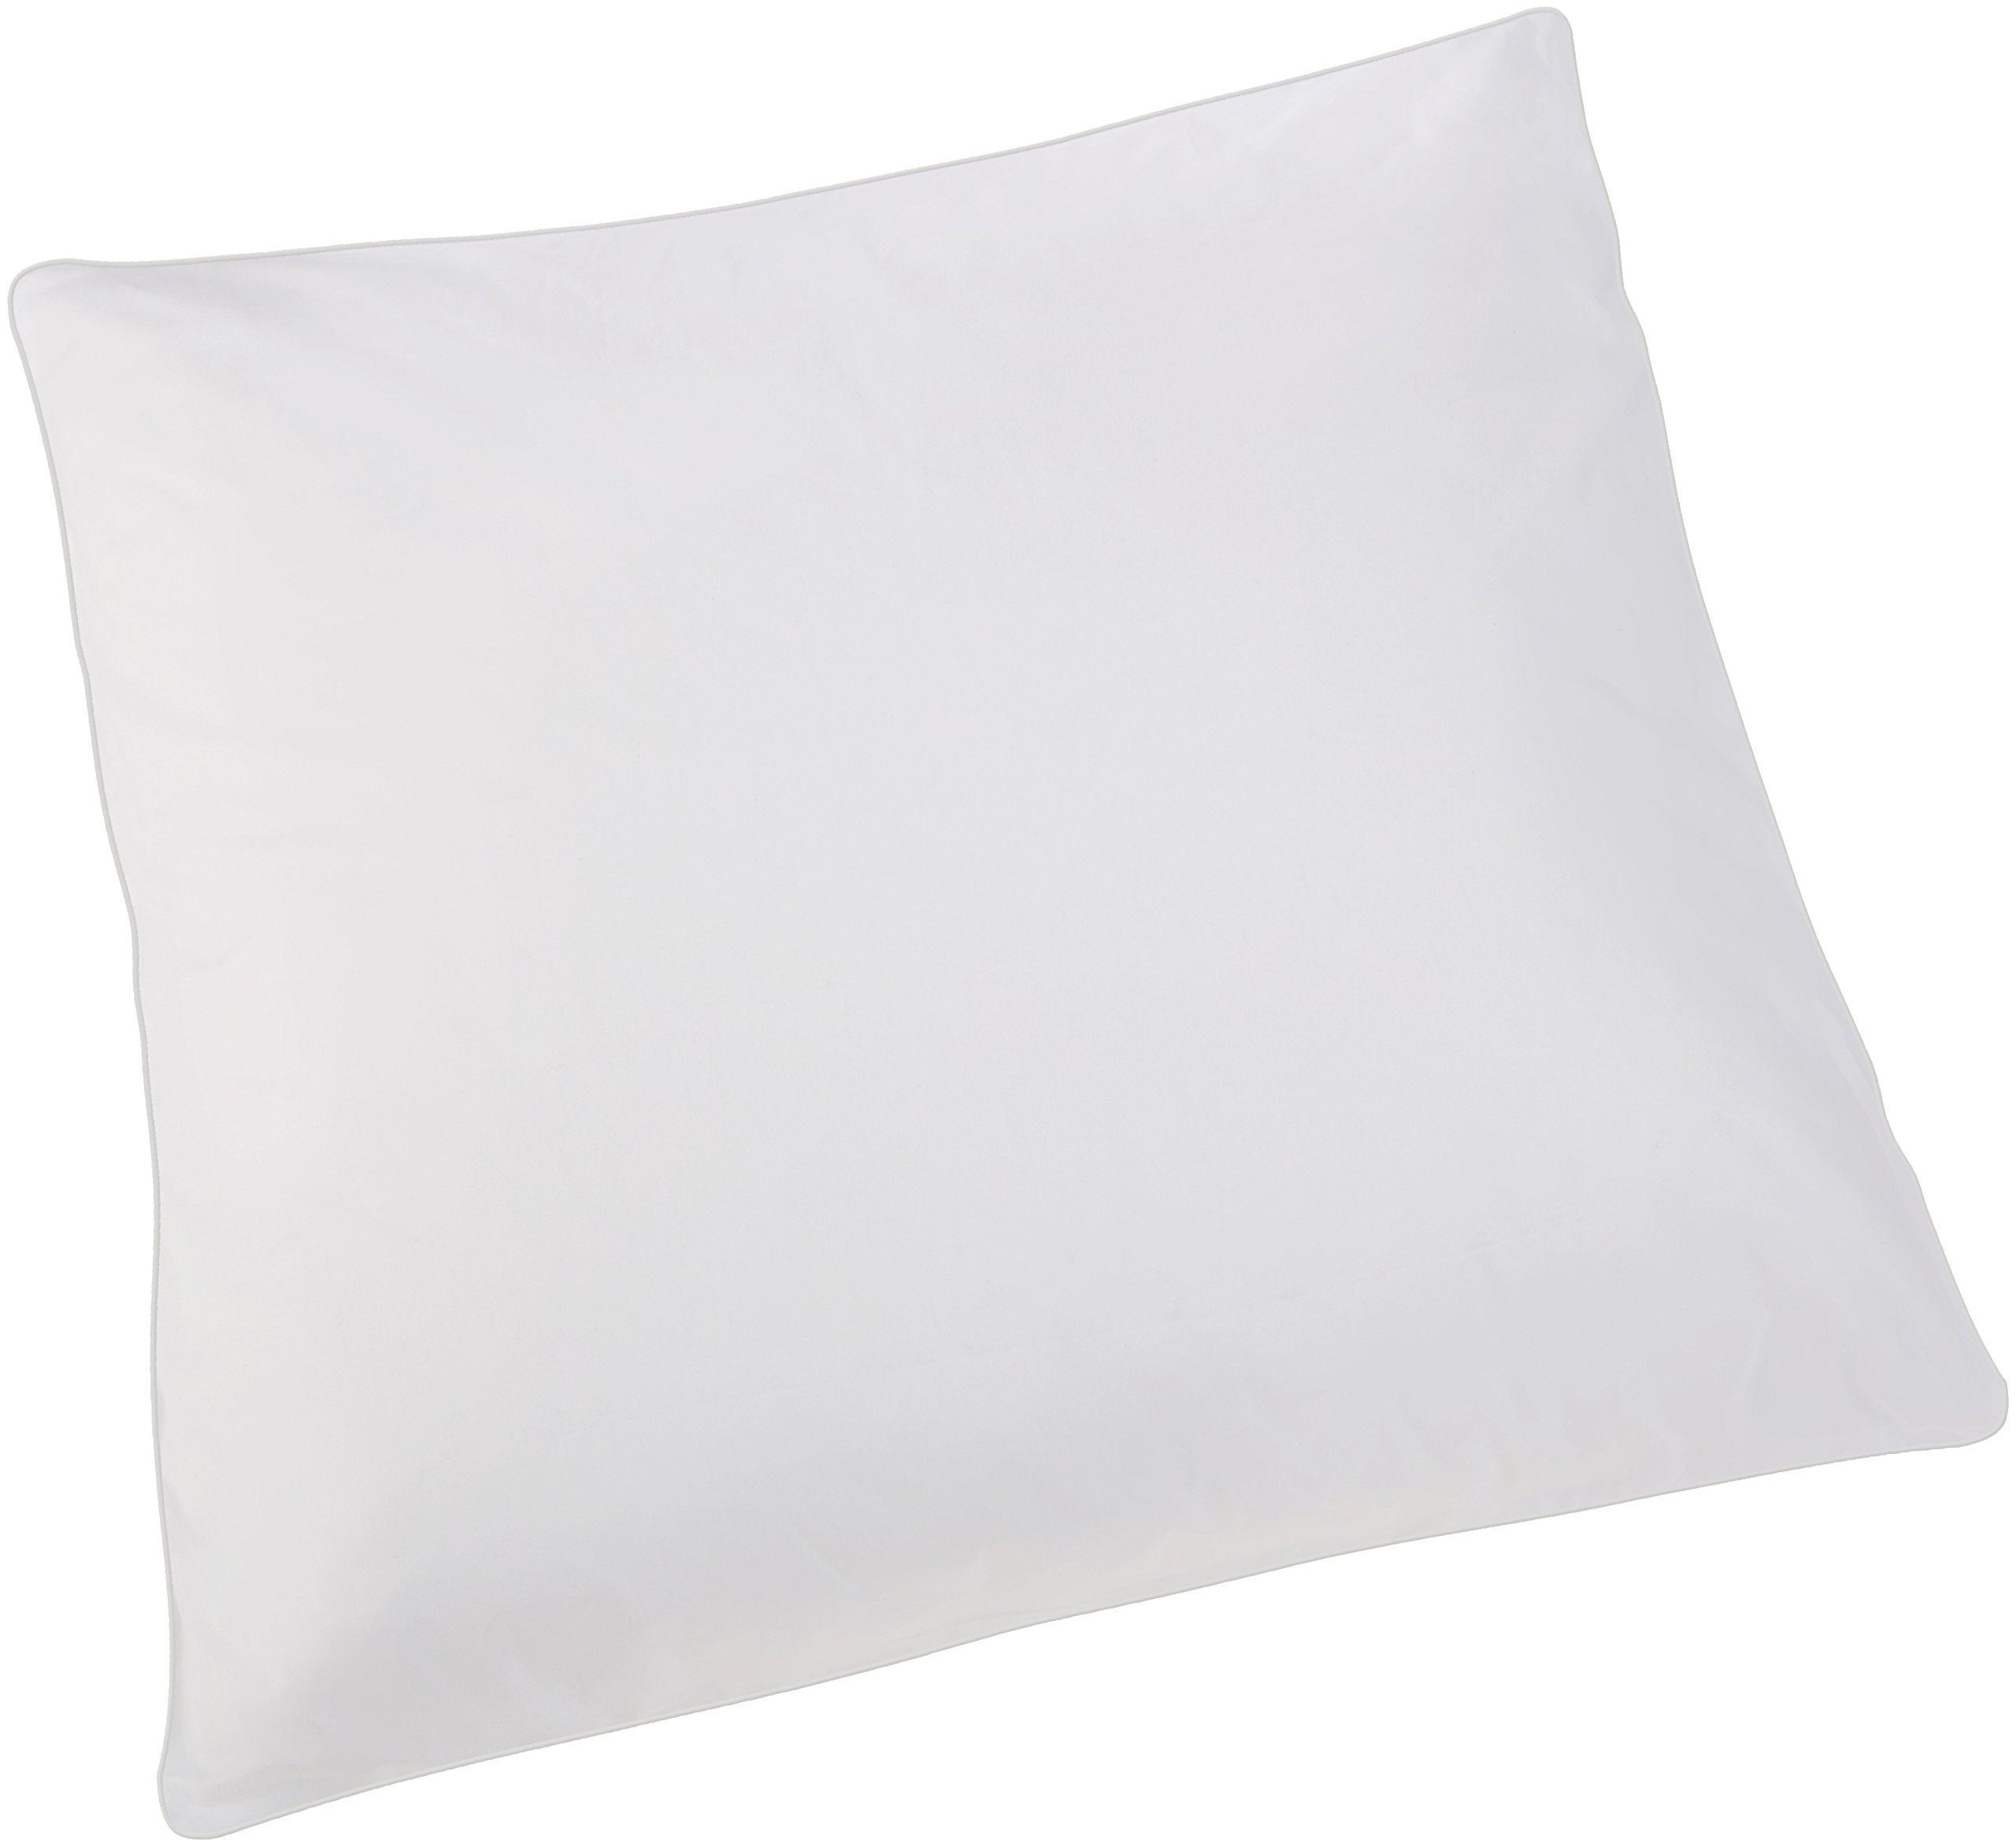 Calvin Klein Home Series 01, Euro Sham, Grey